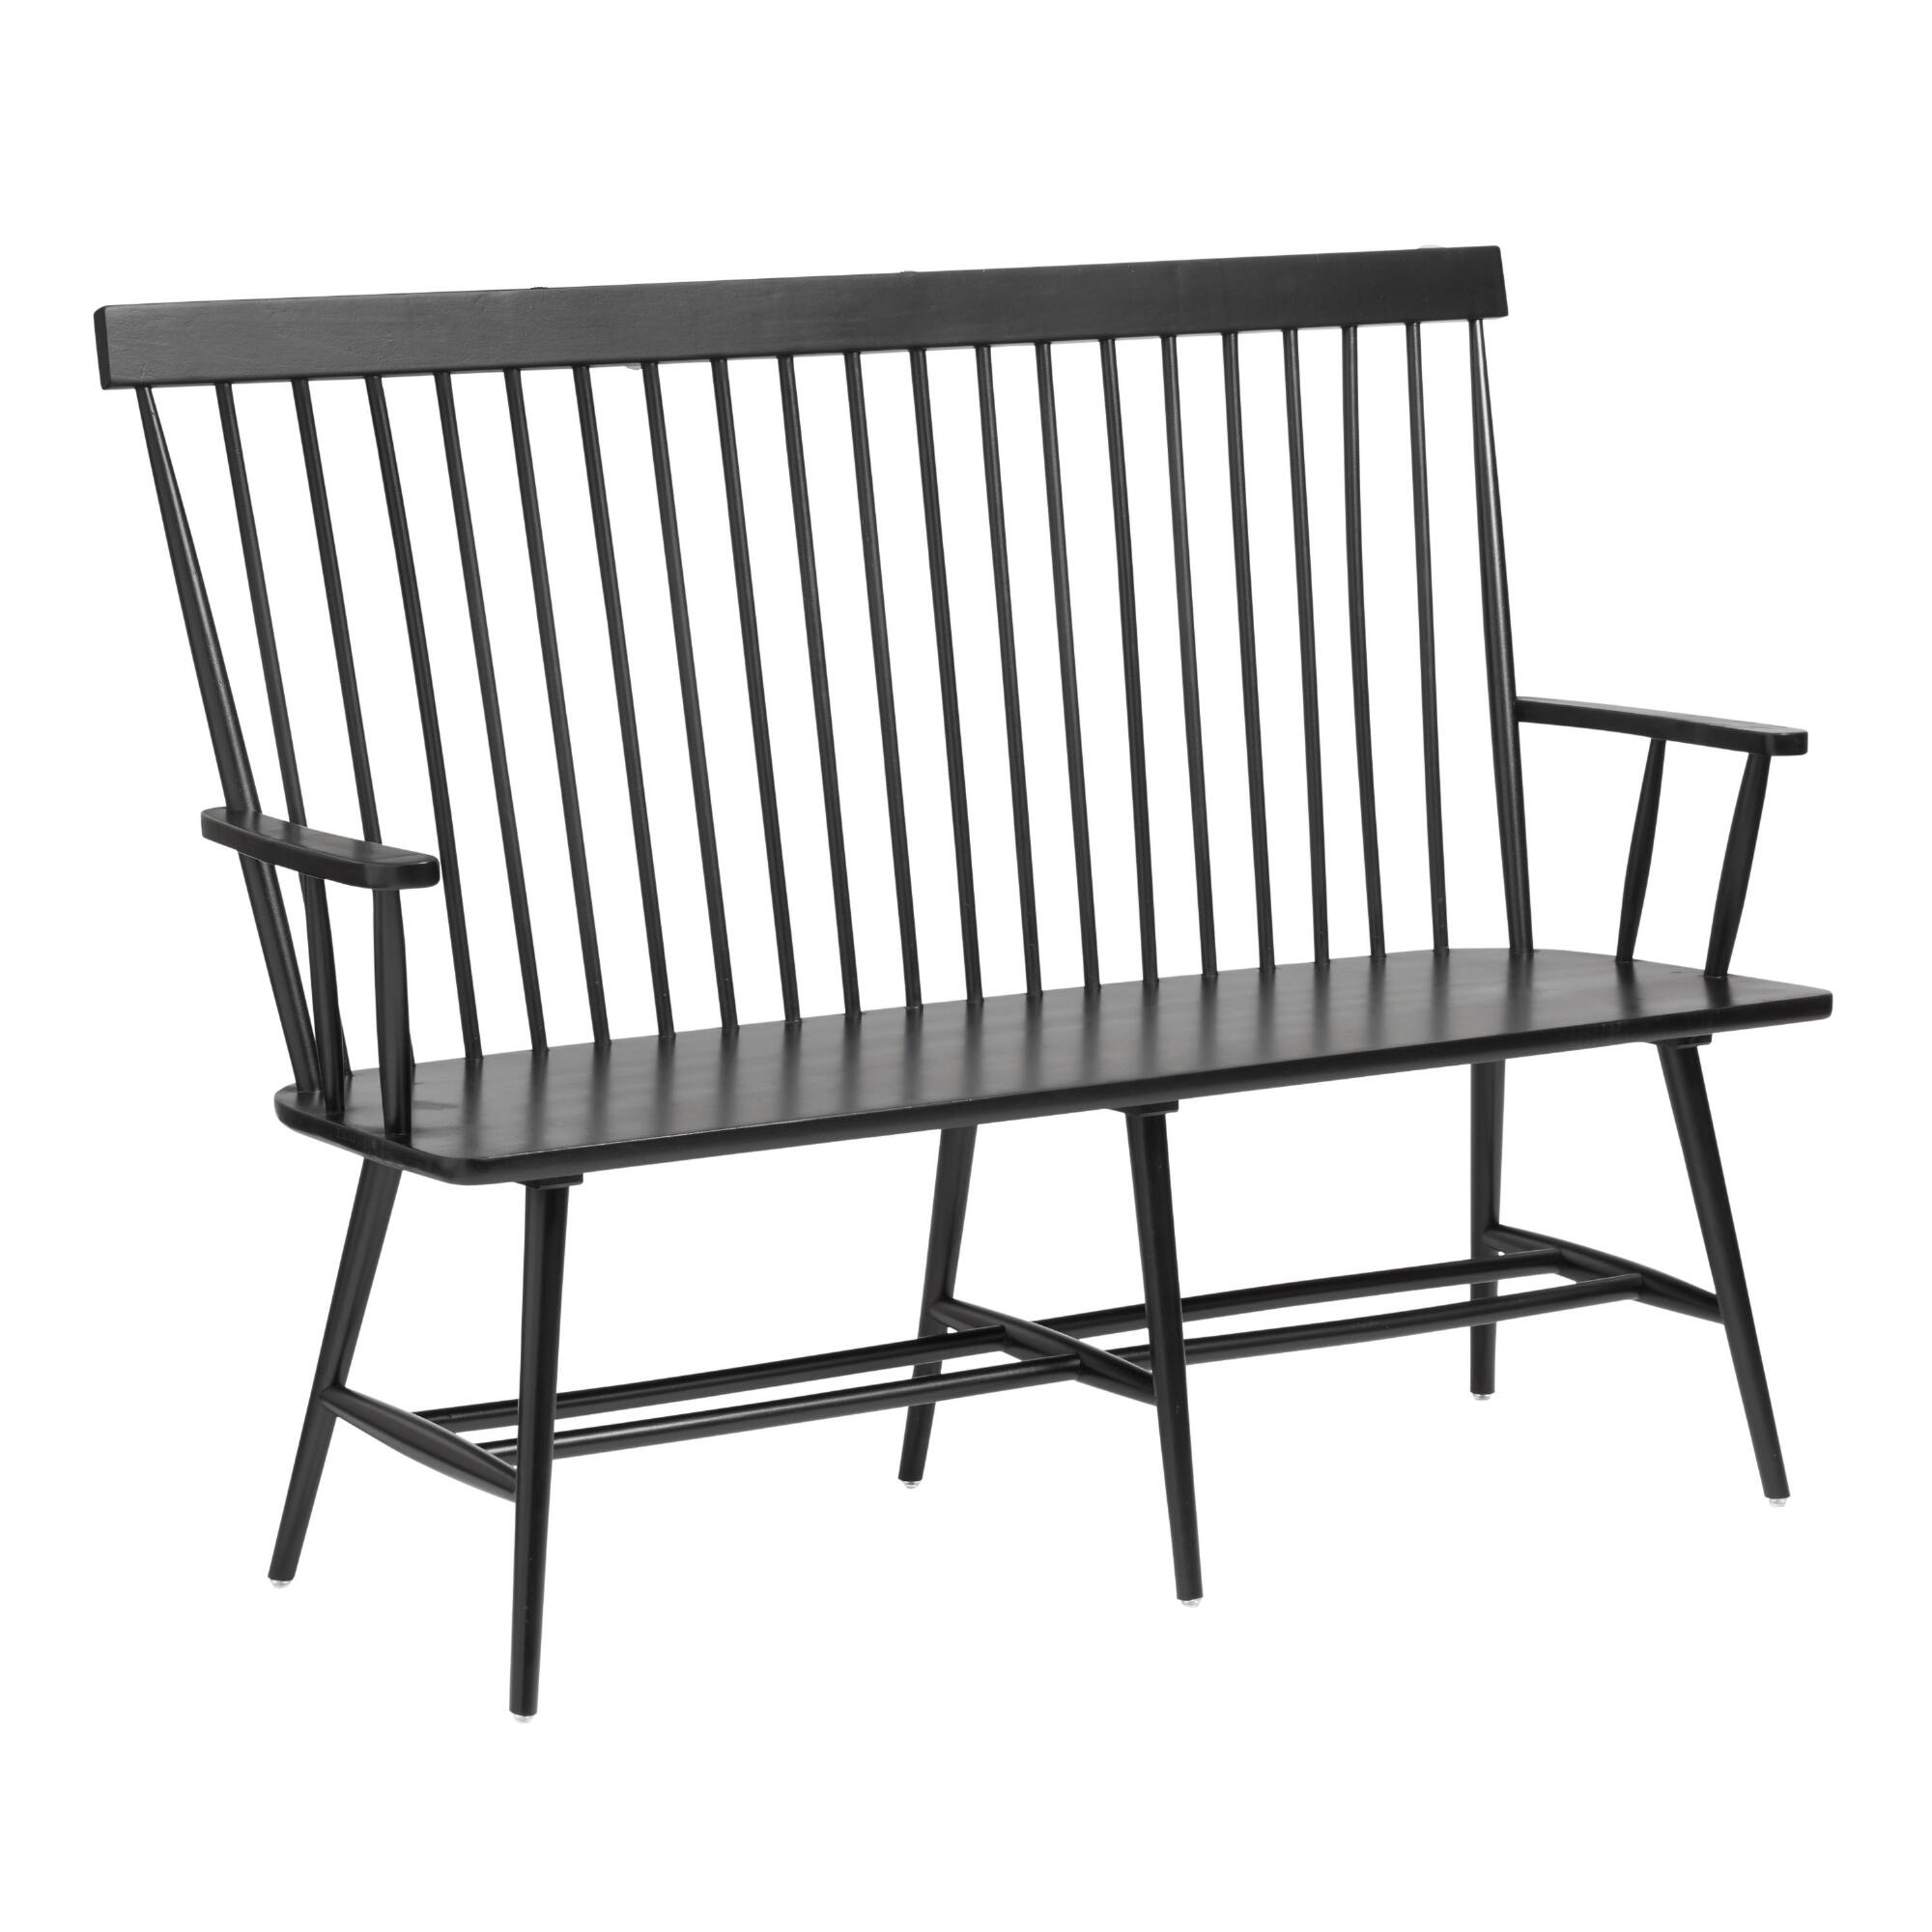 bench full inspirational ideas tv wood unique size black large of elegant weather awesome grey furniture